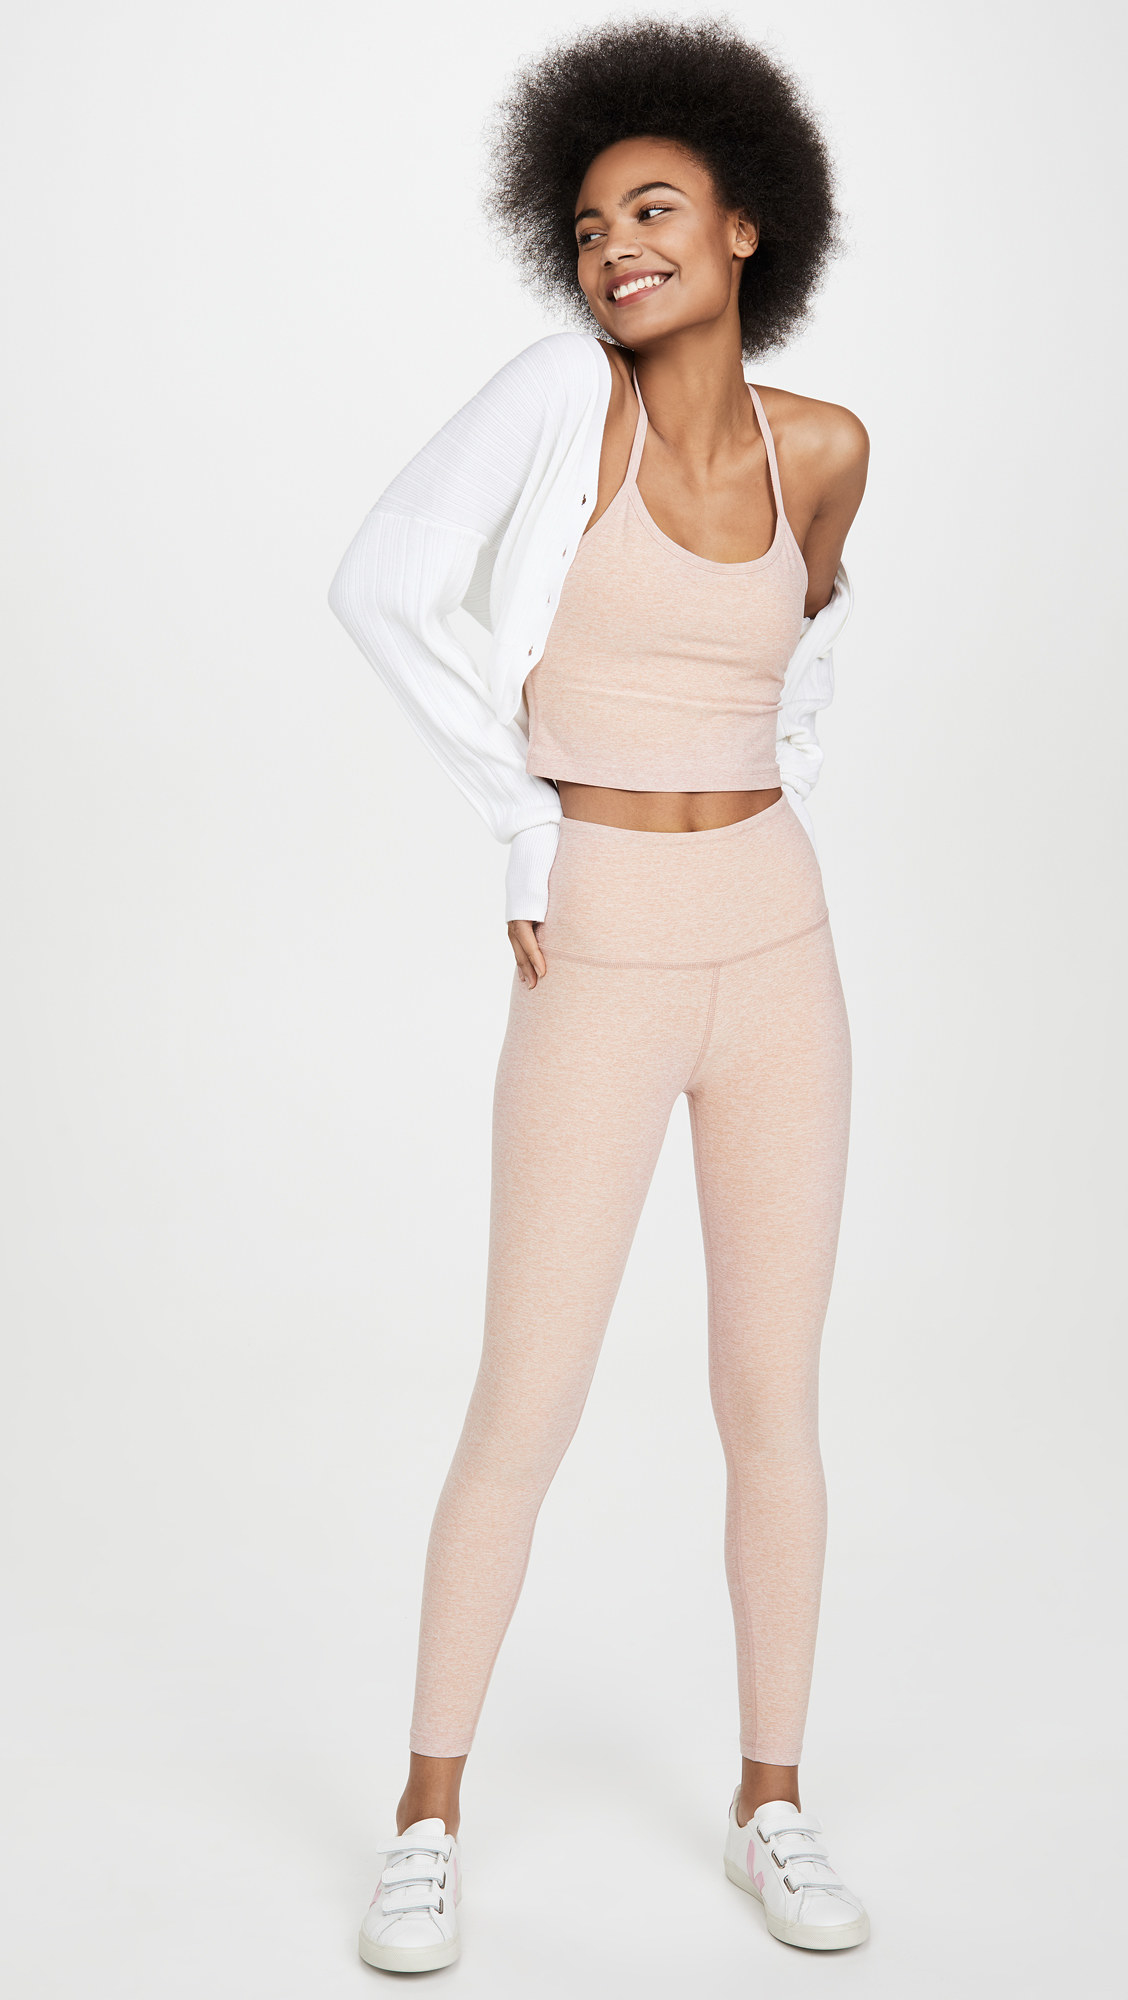 a model wearing heathered blush pink yoga pants with a matching tank top